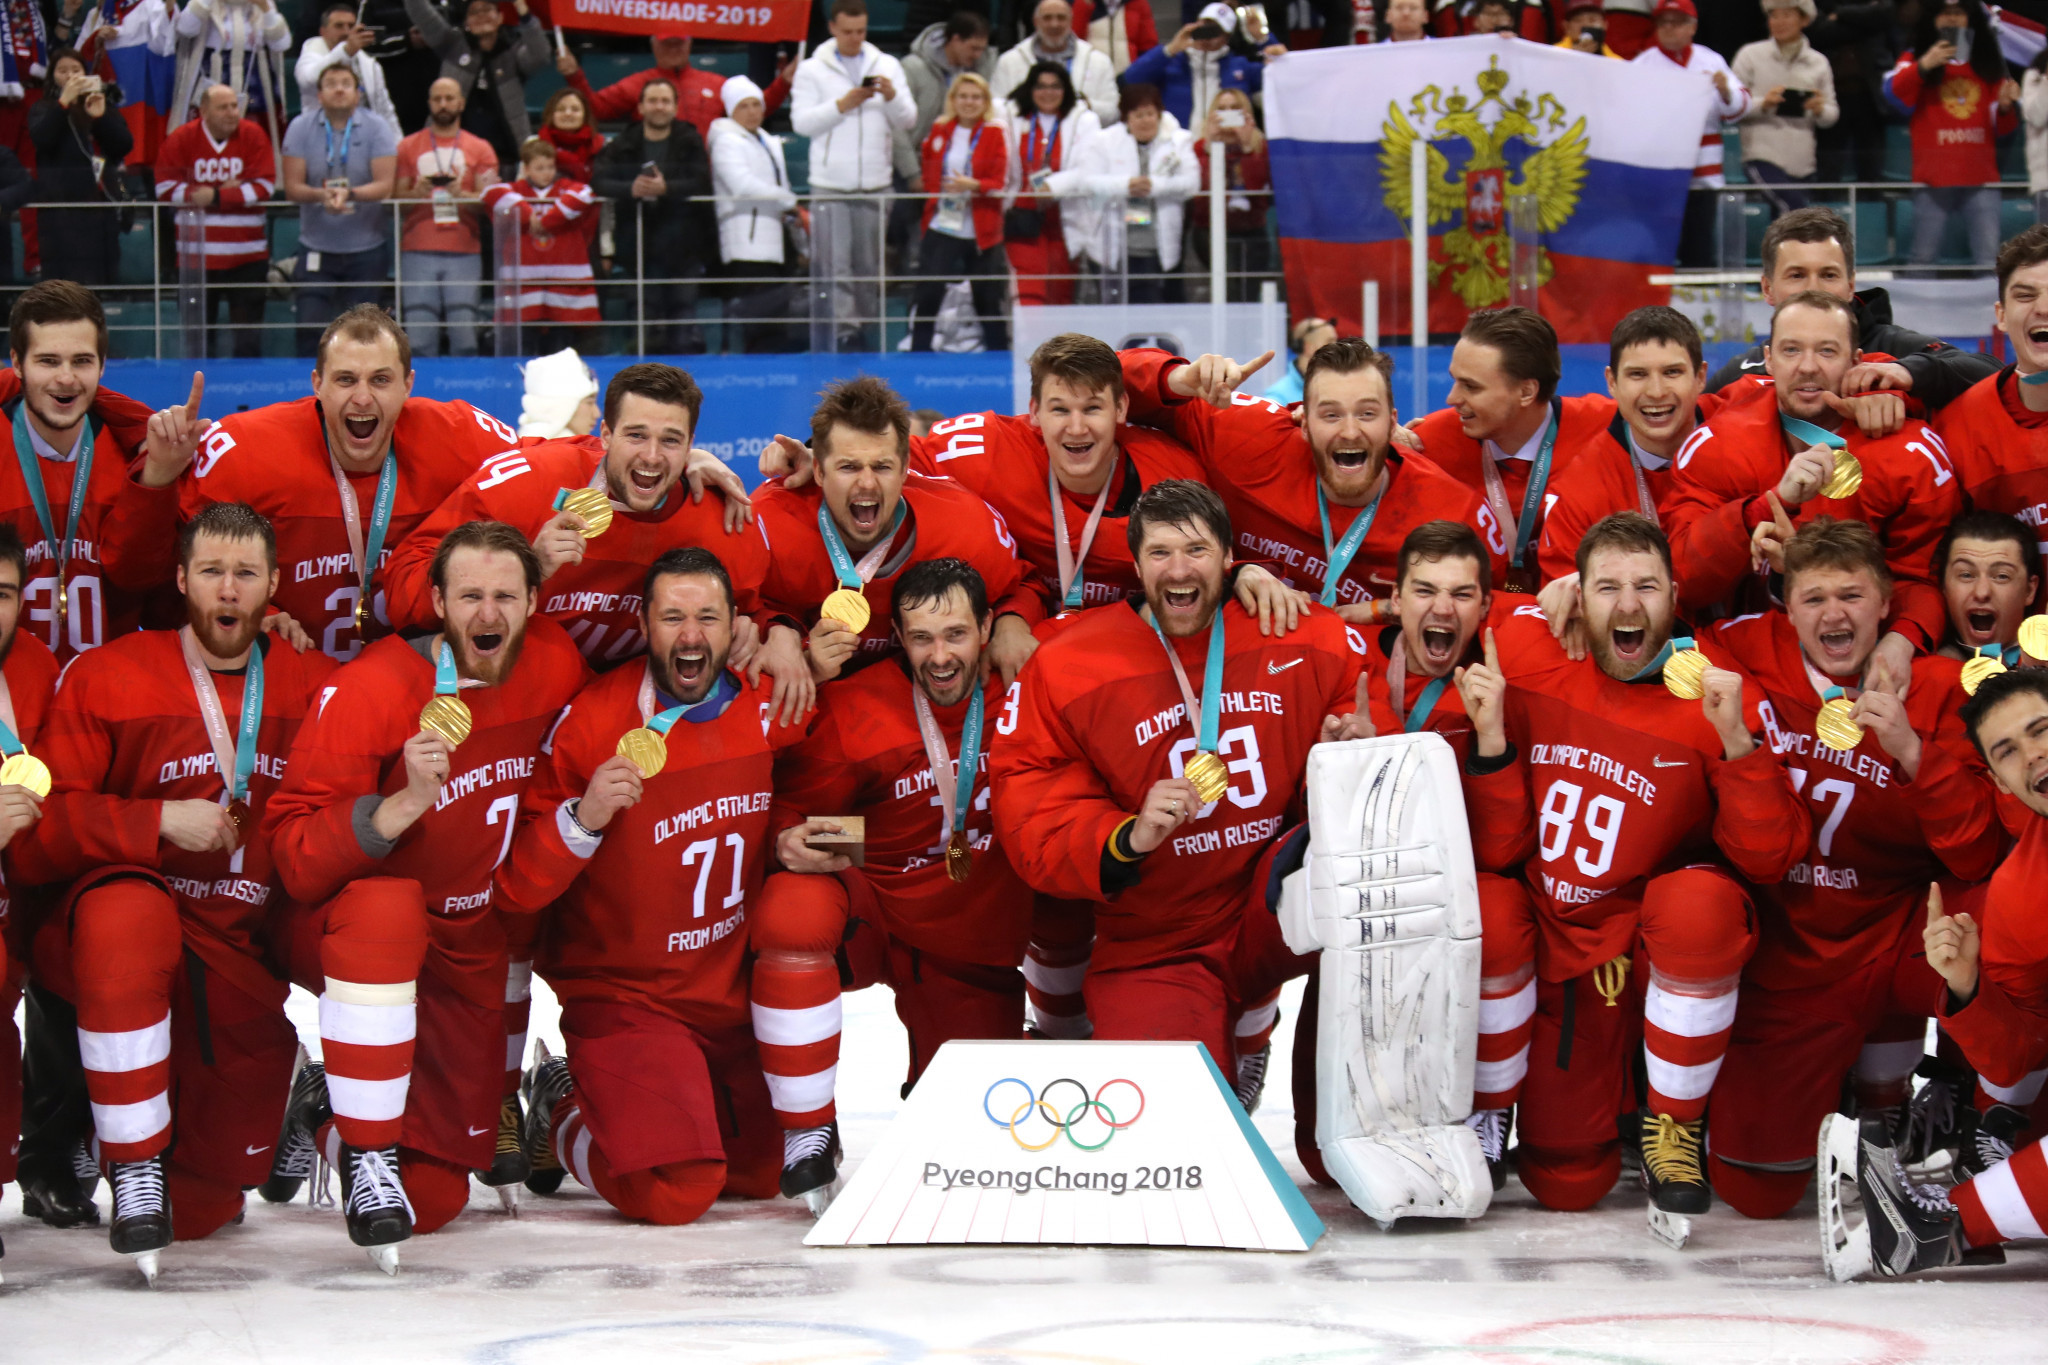 Russia athletes were able to compete at Pyeongchang 2018 as